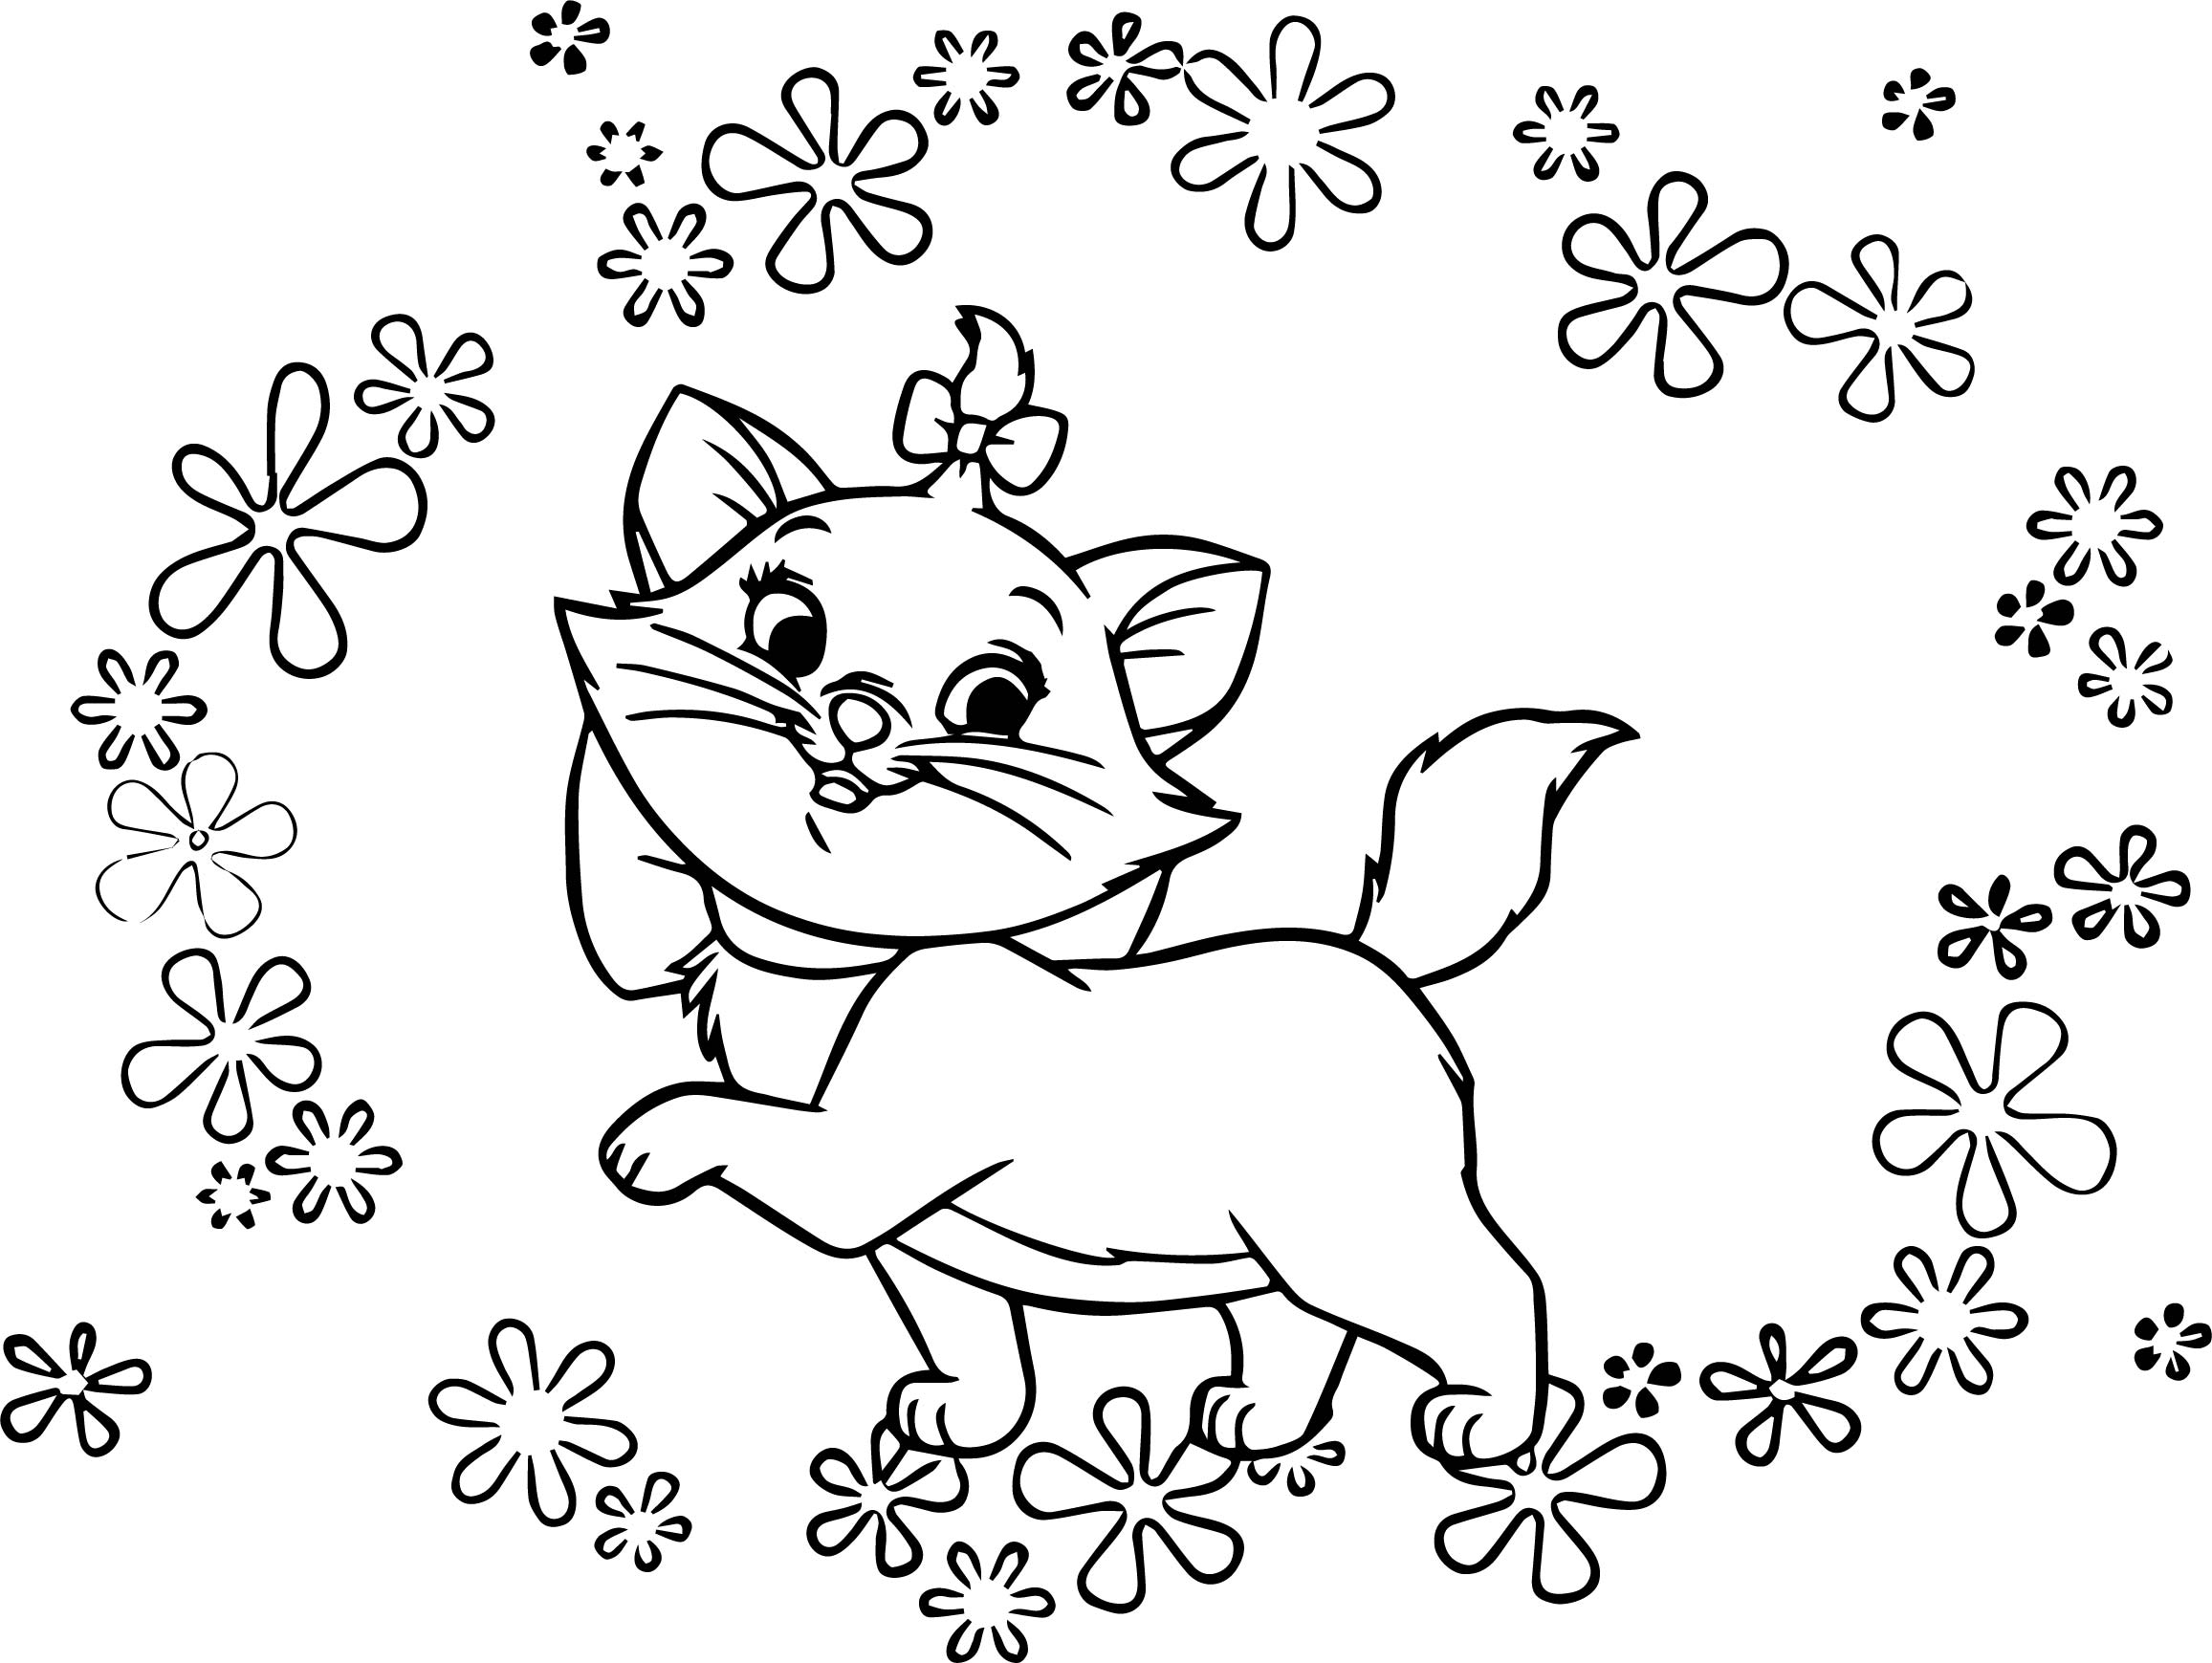 Disney The Flowers Aristocats Coloring Page Wecoloringpage